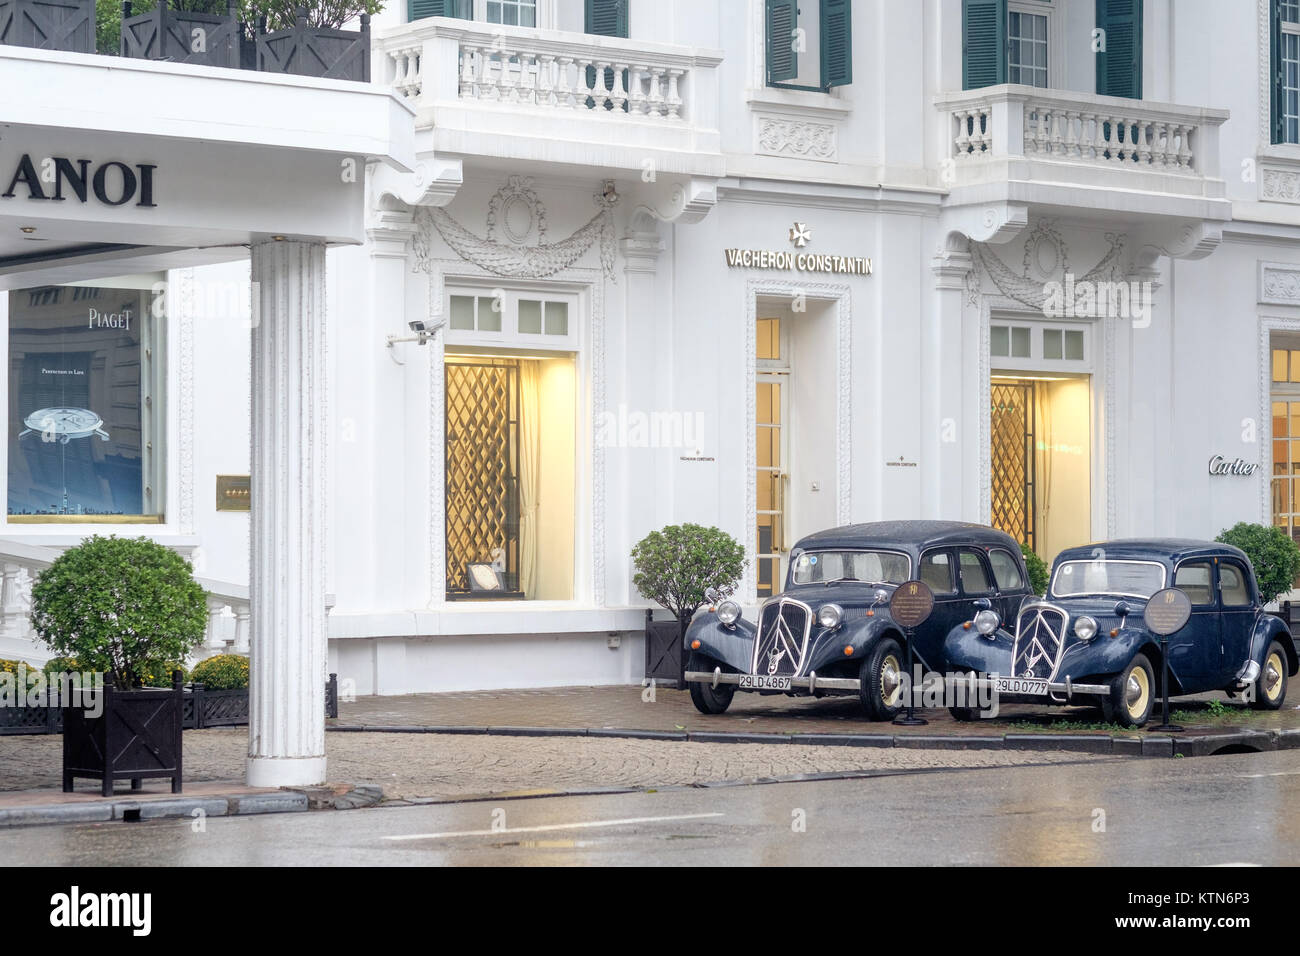 Metropole Hotel in Hanoi on a rainy day in February. This legendary  hotel built in French colonial style the hotel - Stock Image